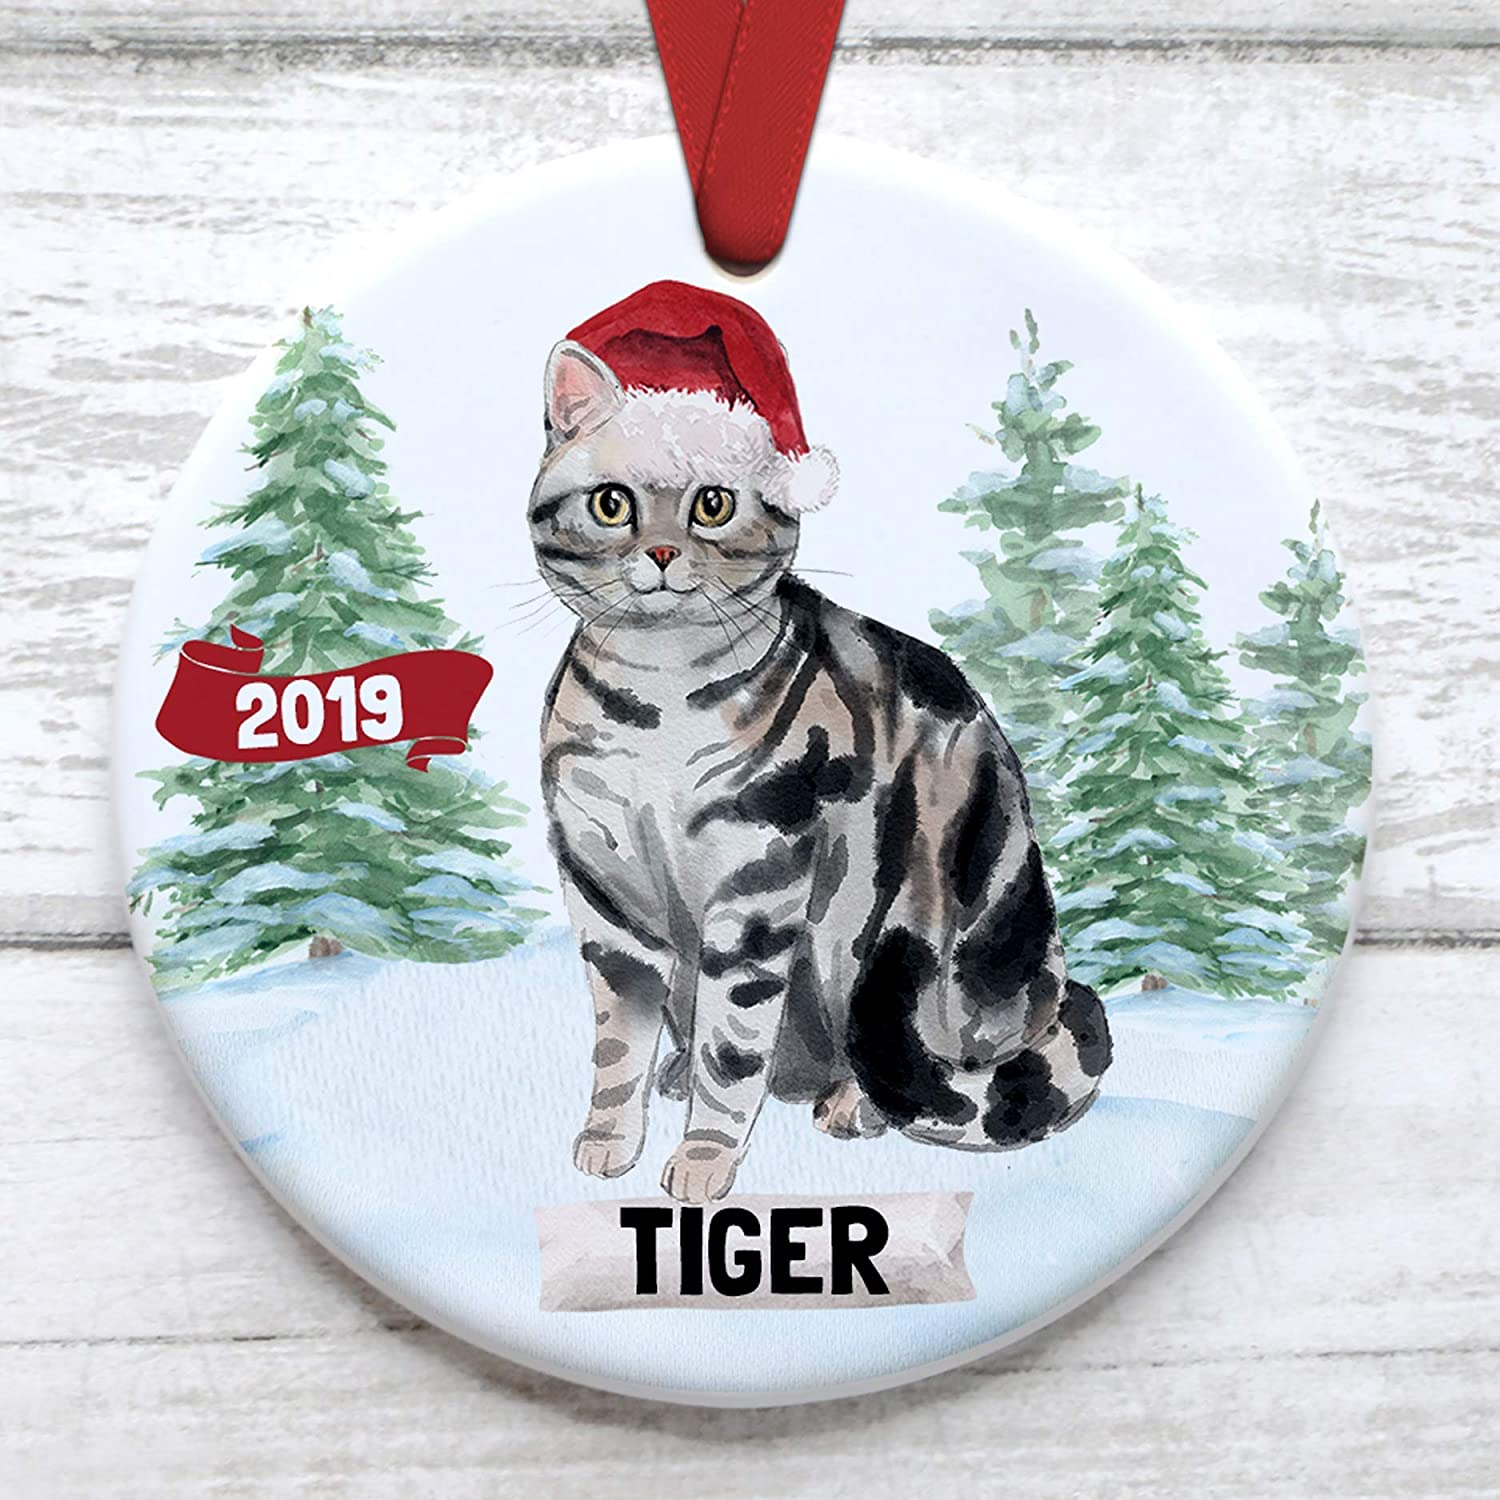 Personalized Pet Ornament Customized with Kittys Name Tabby Cat Christmas Tree Ornament Xmas Gift Wrapped